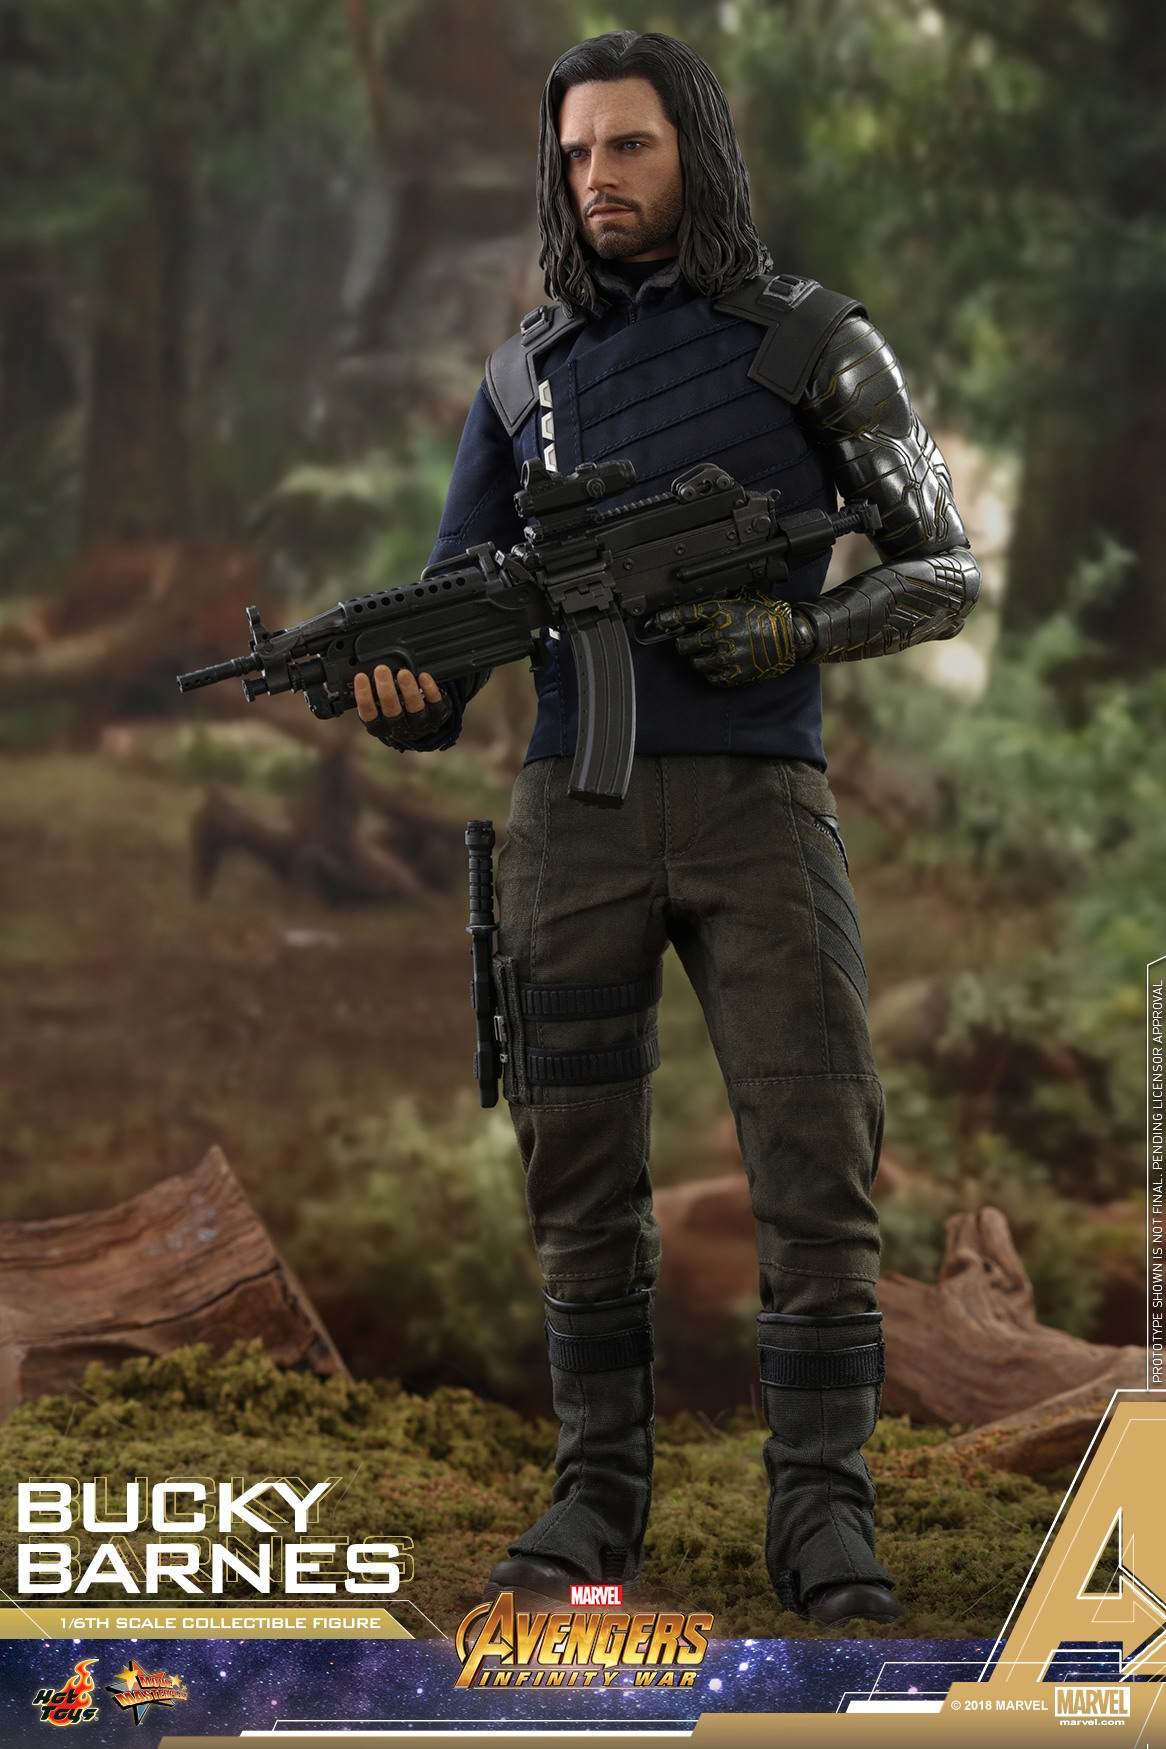 Hot-Toys-AIW-Bucky-Barnes-collectible-figure_PR4.jpg